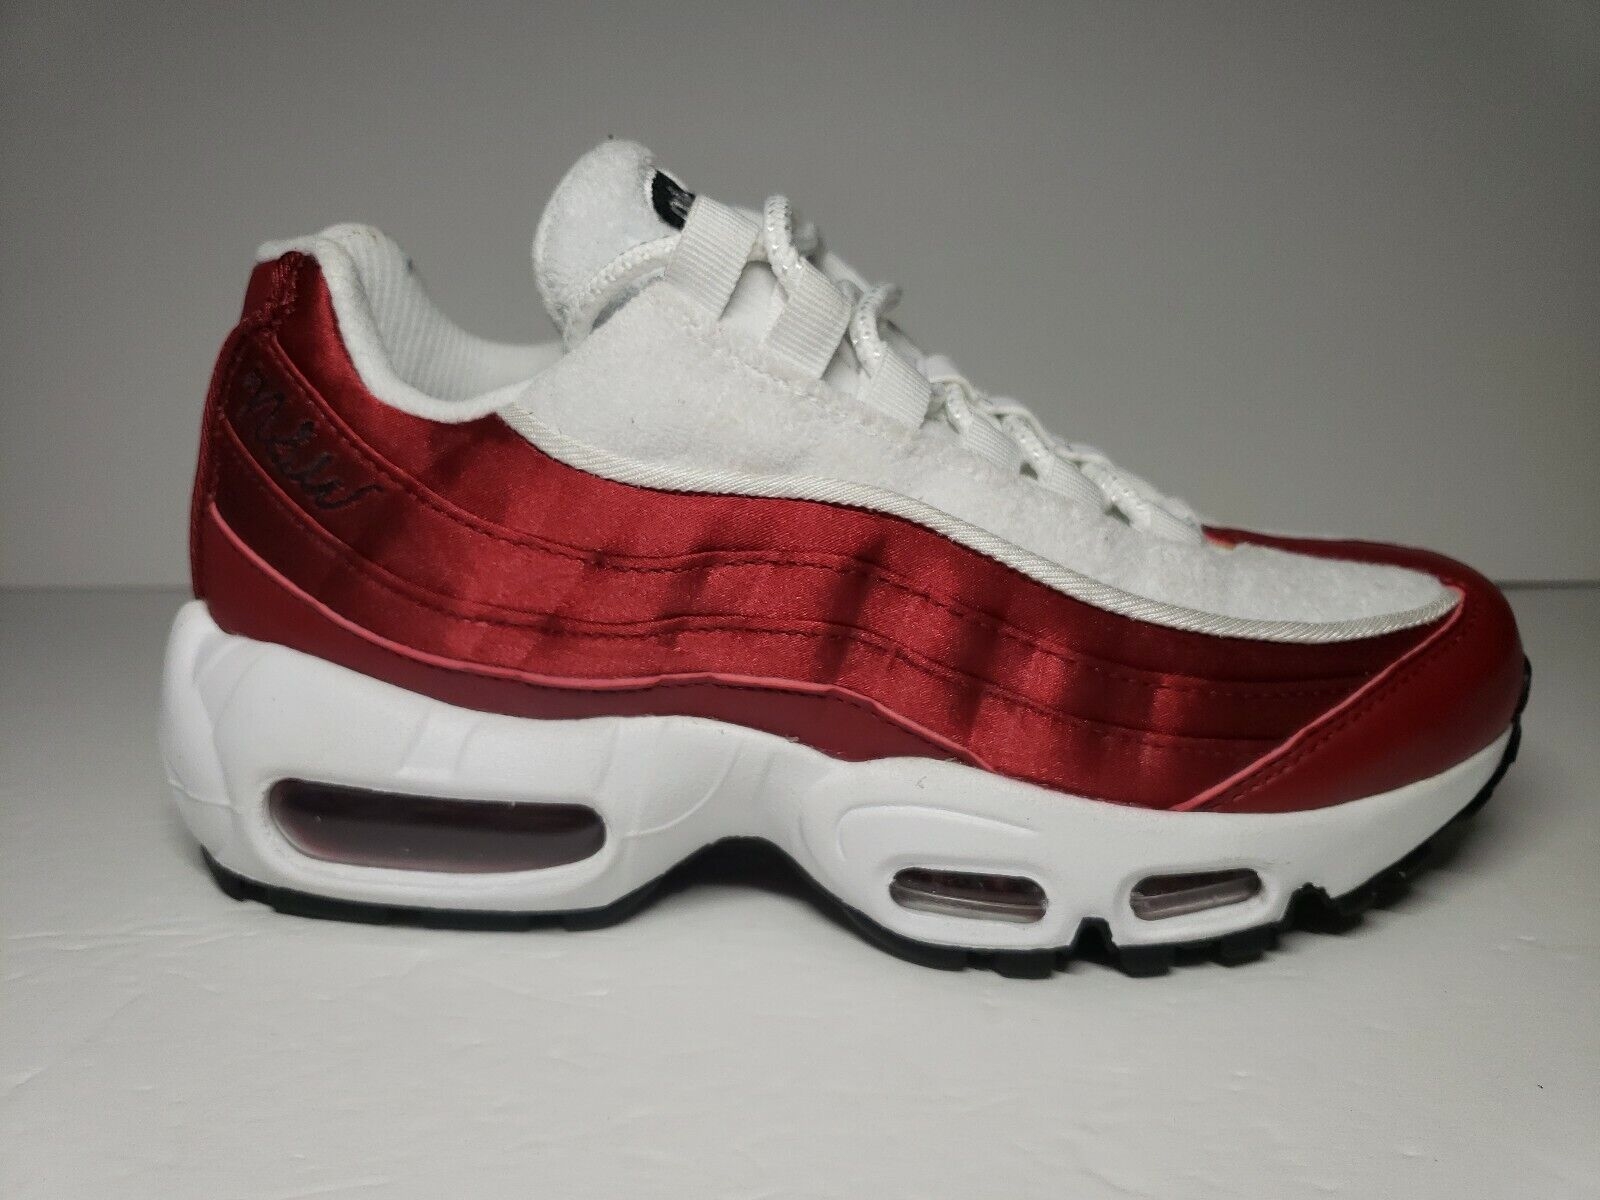 NEW Nike Women's Air Max 95 LX Satin Terry Red White Size 5 and 6 AA1103-601